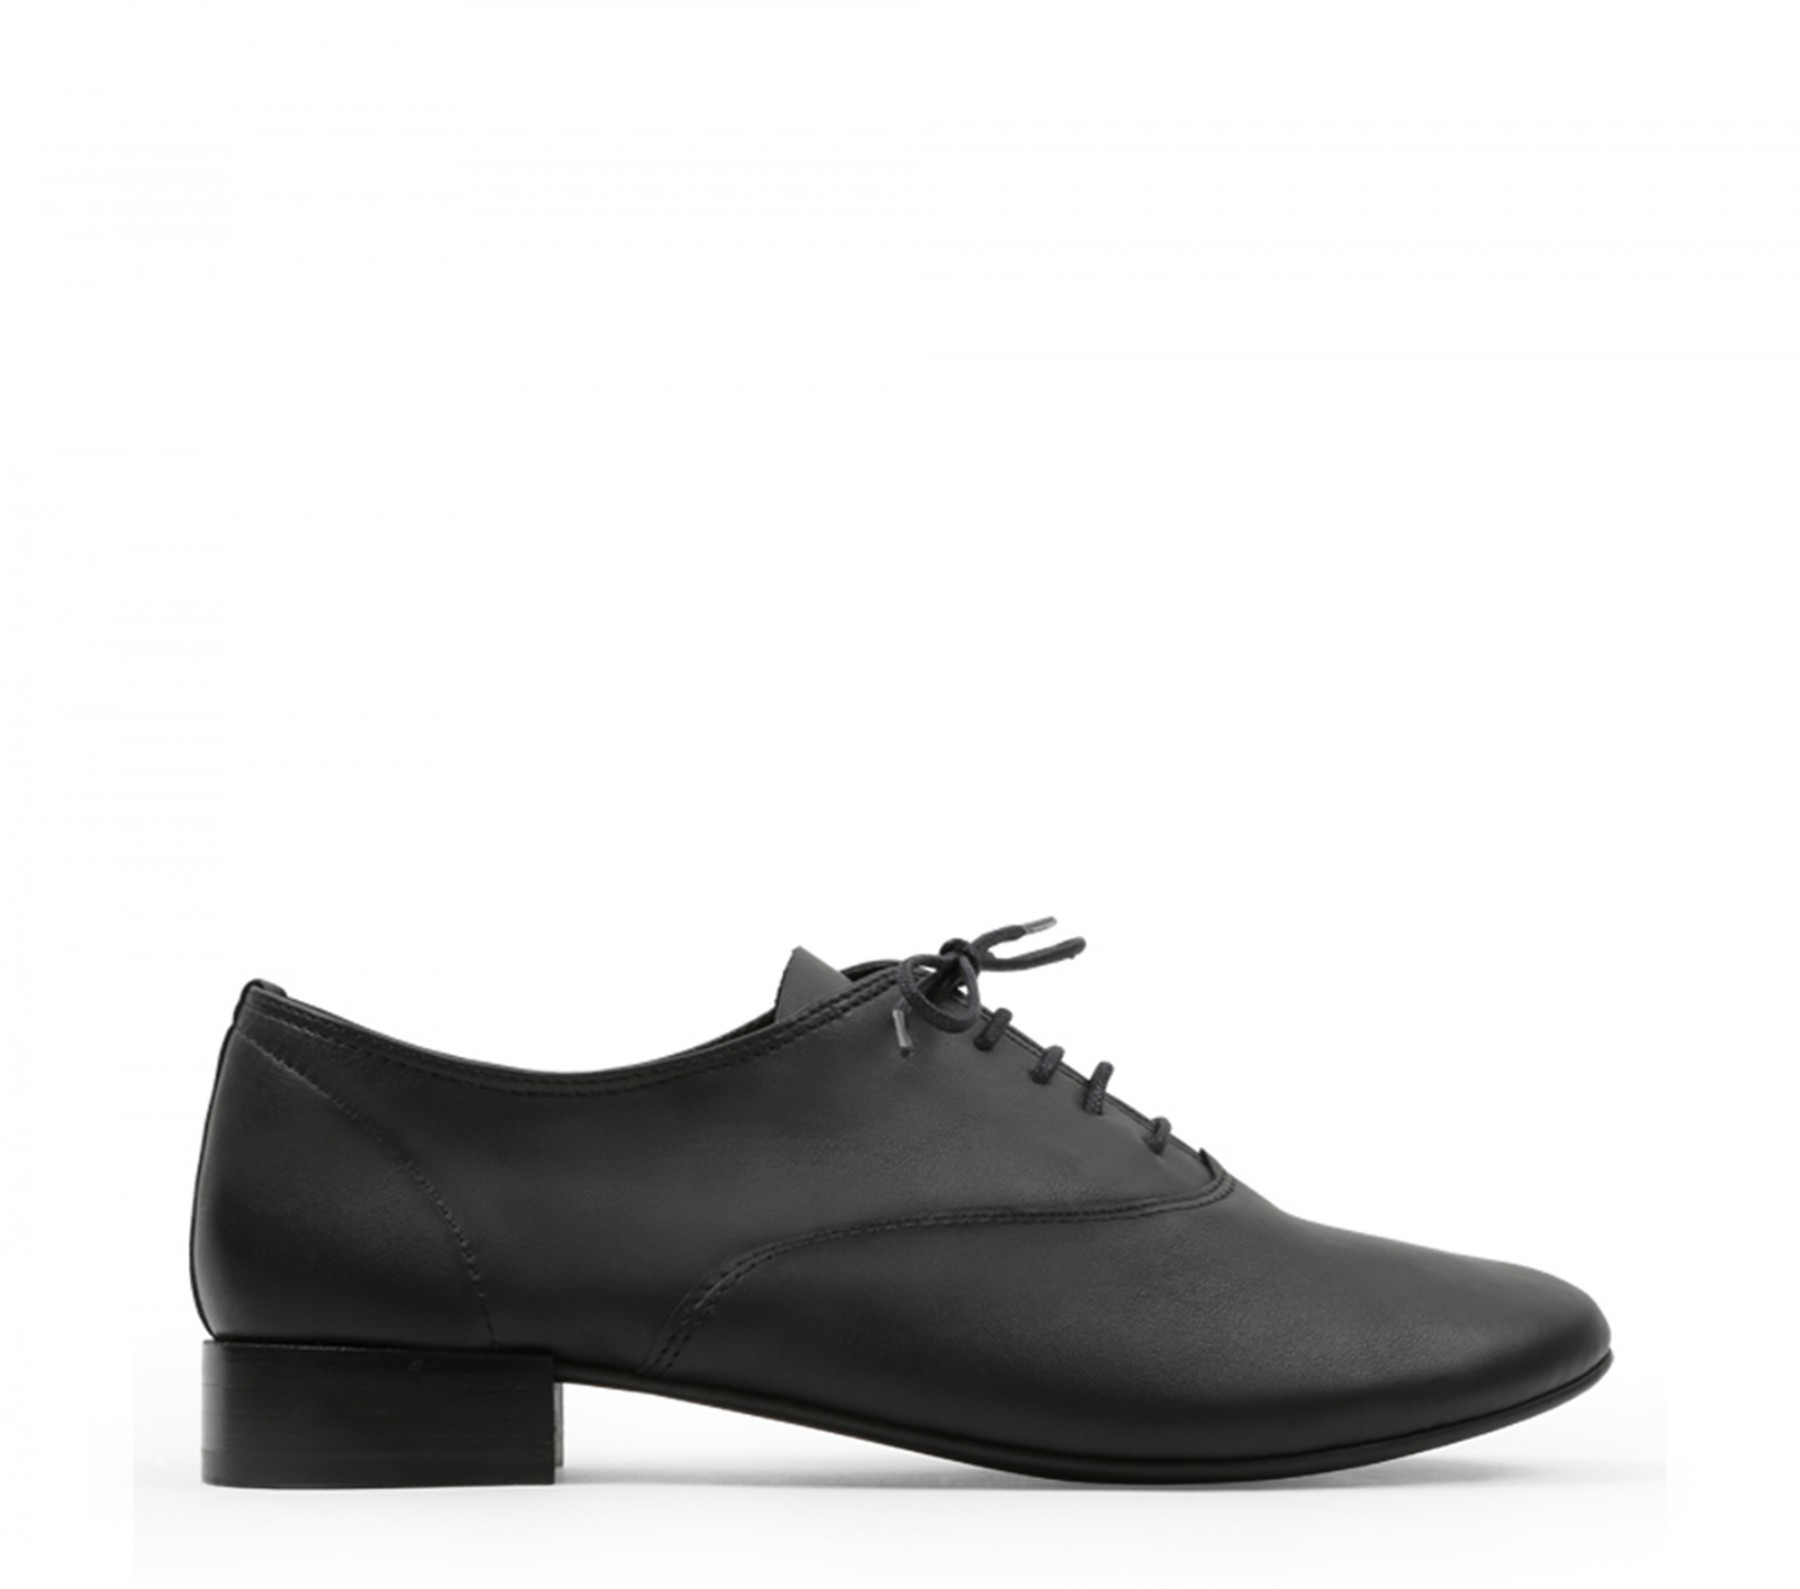 Repetto Richelieus Charlotte Noir